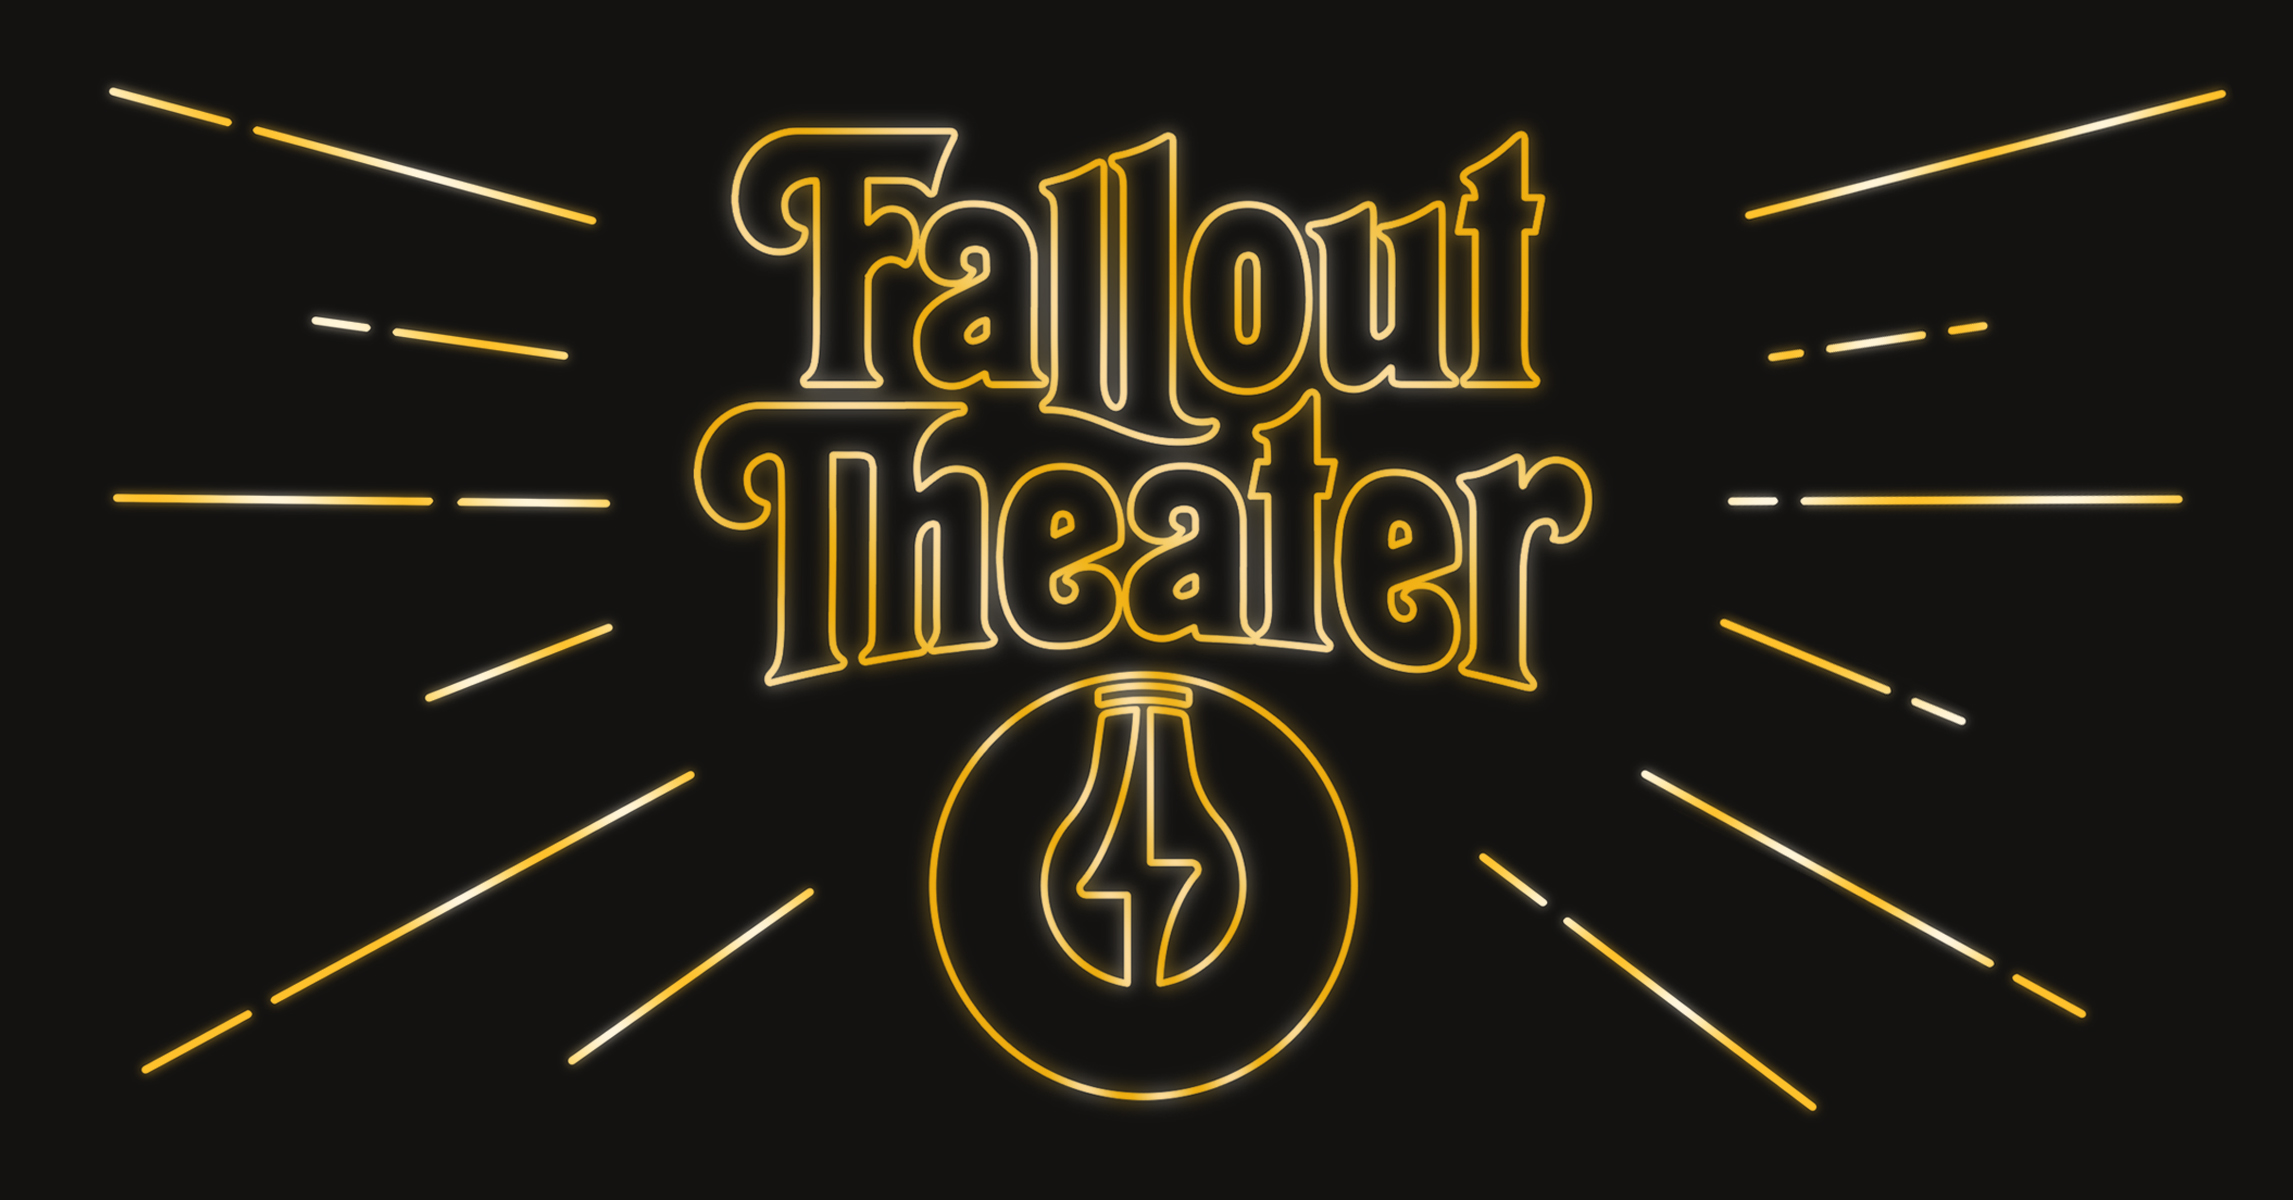 Fallout Theater logo with black background